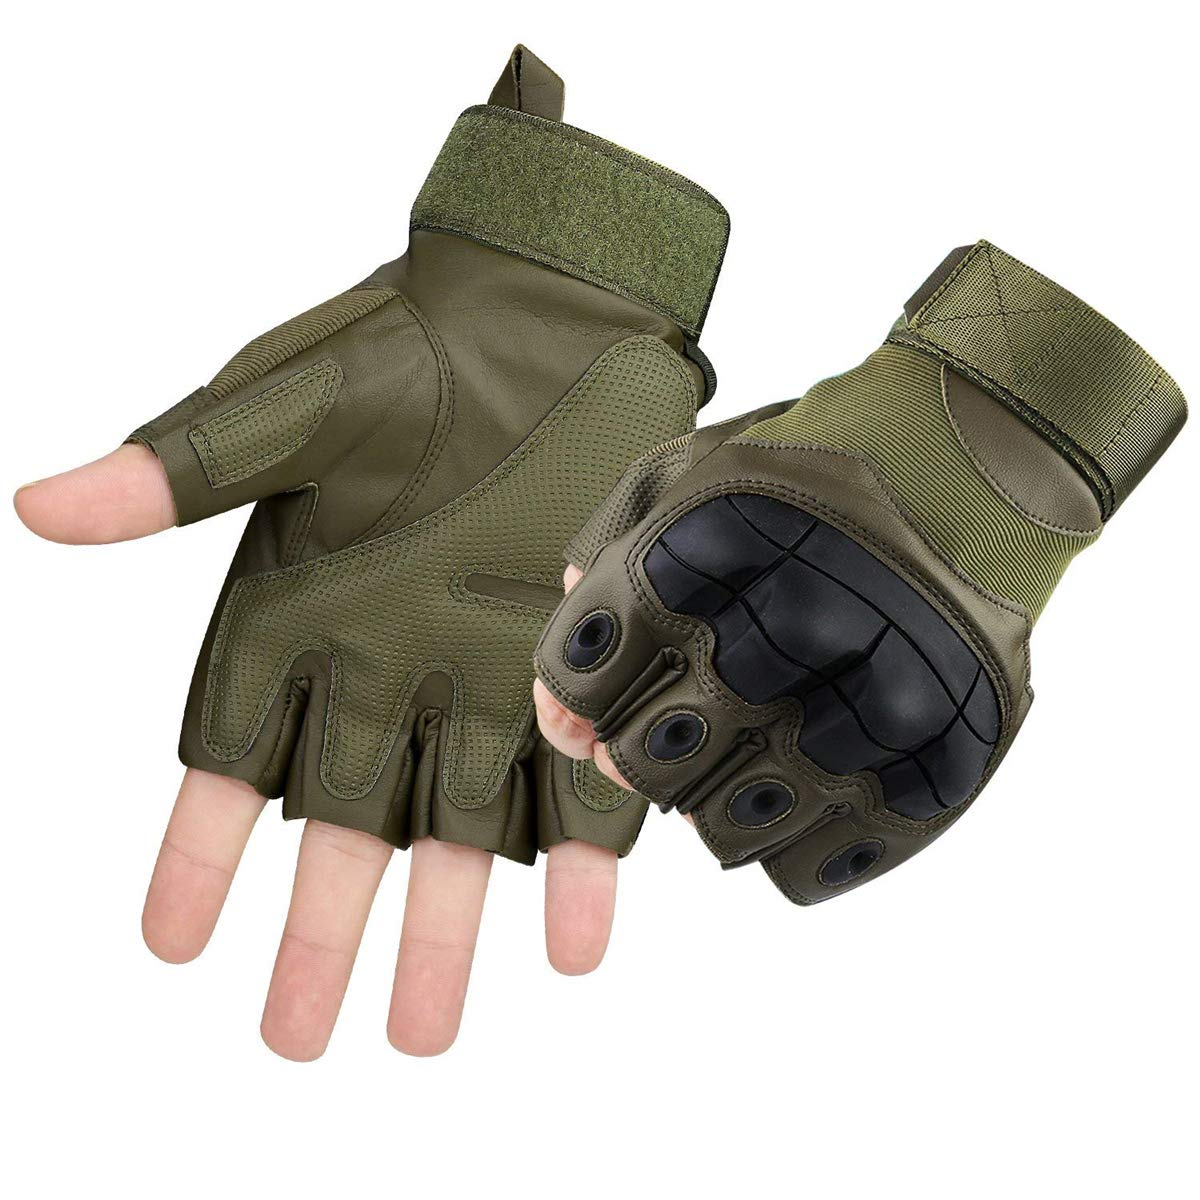 Xiaoai Tactical Gloves, Half Finger Military Rubber Hard Knuckle Gloves Fit for Outdoors Exercise Climbing Racing Hiking Camping Cycling Motorcycle (Army Green, M)